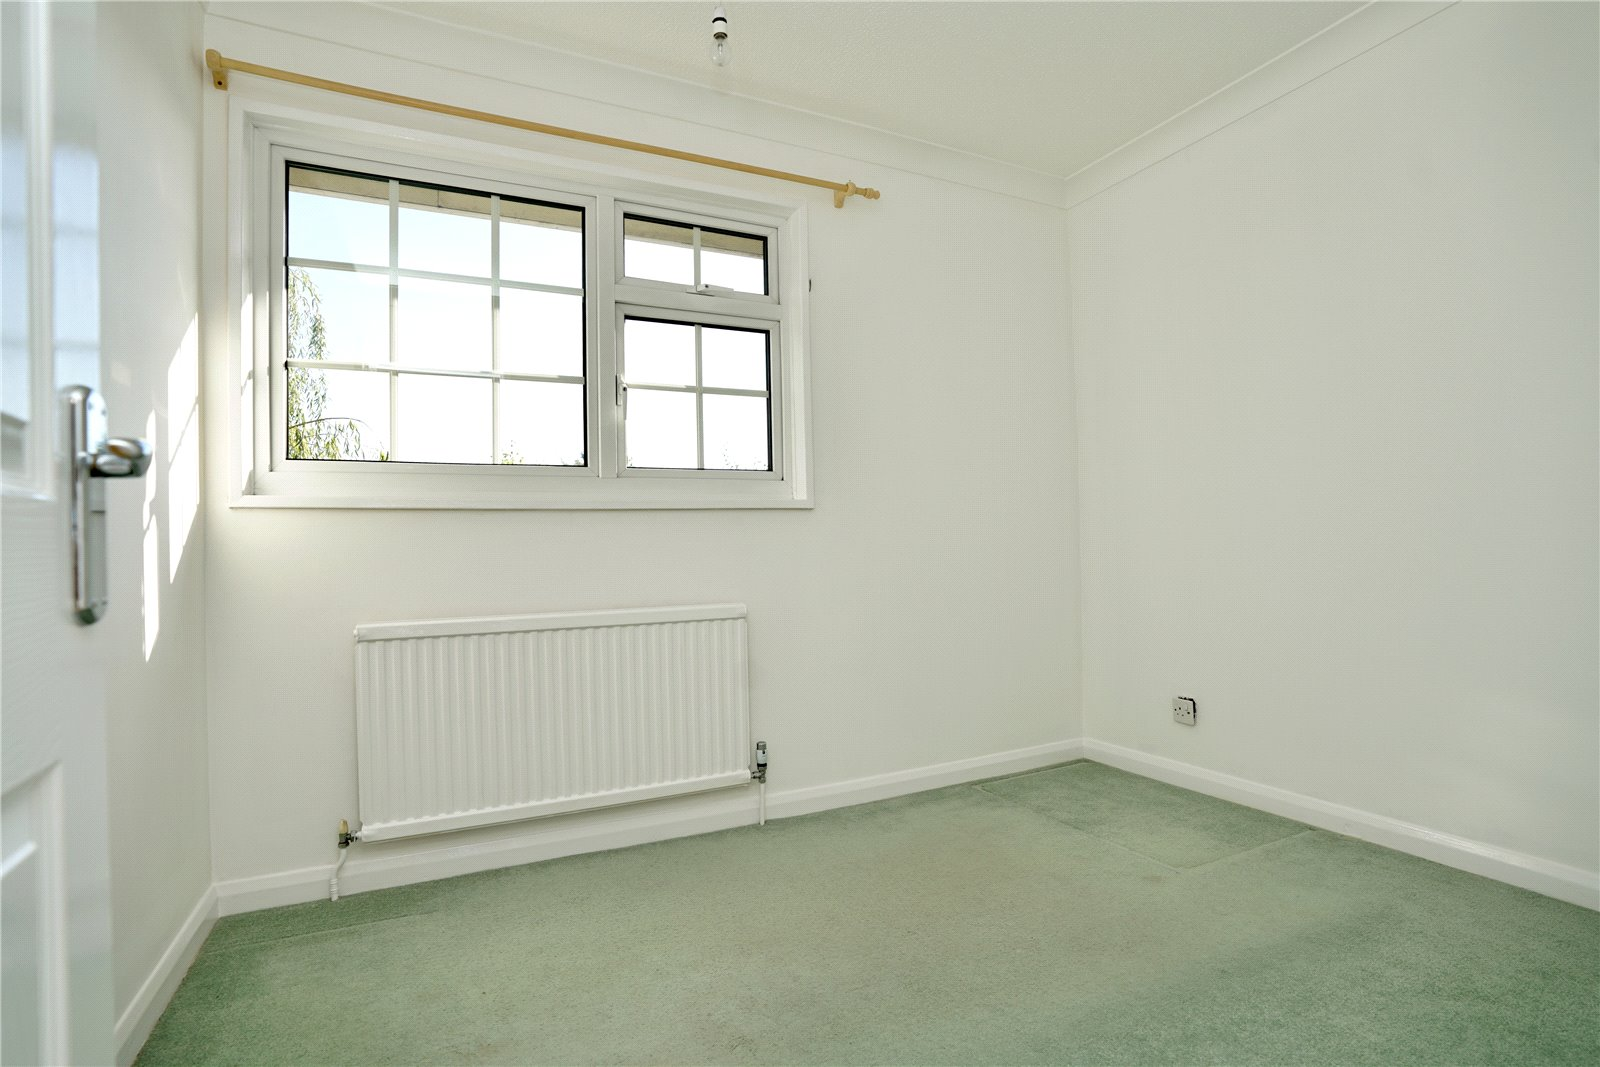 4 bed house for sale in All Hallows, Sandy  - Property Image 10